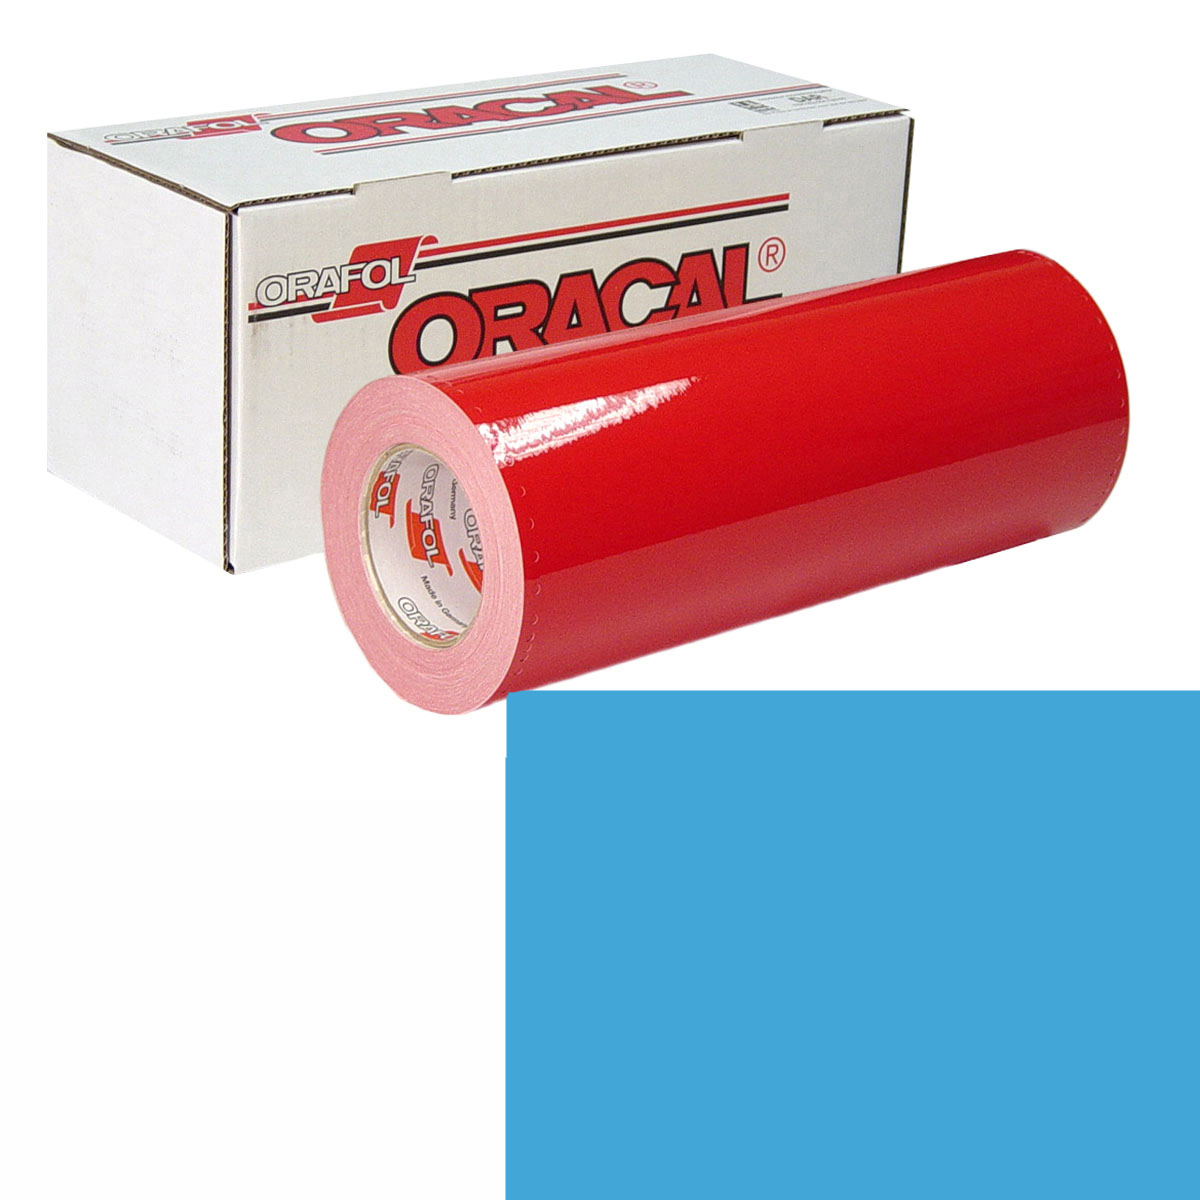 ORACAL 951 15In X 10Yd 056 Ice Blue